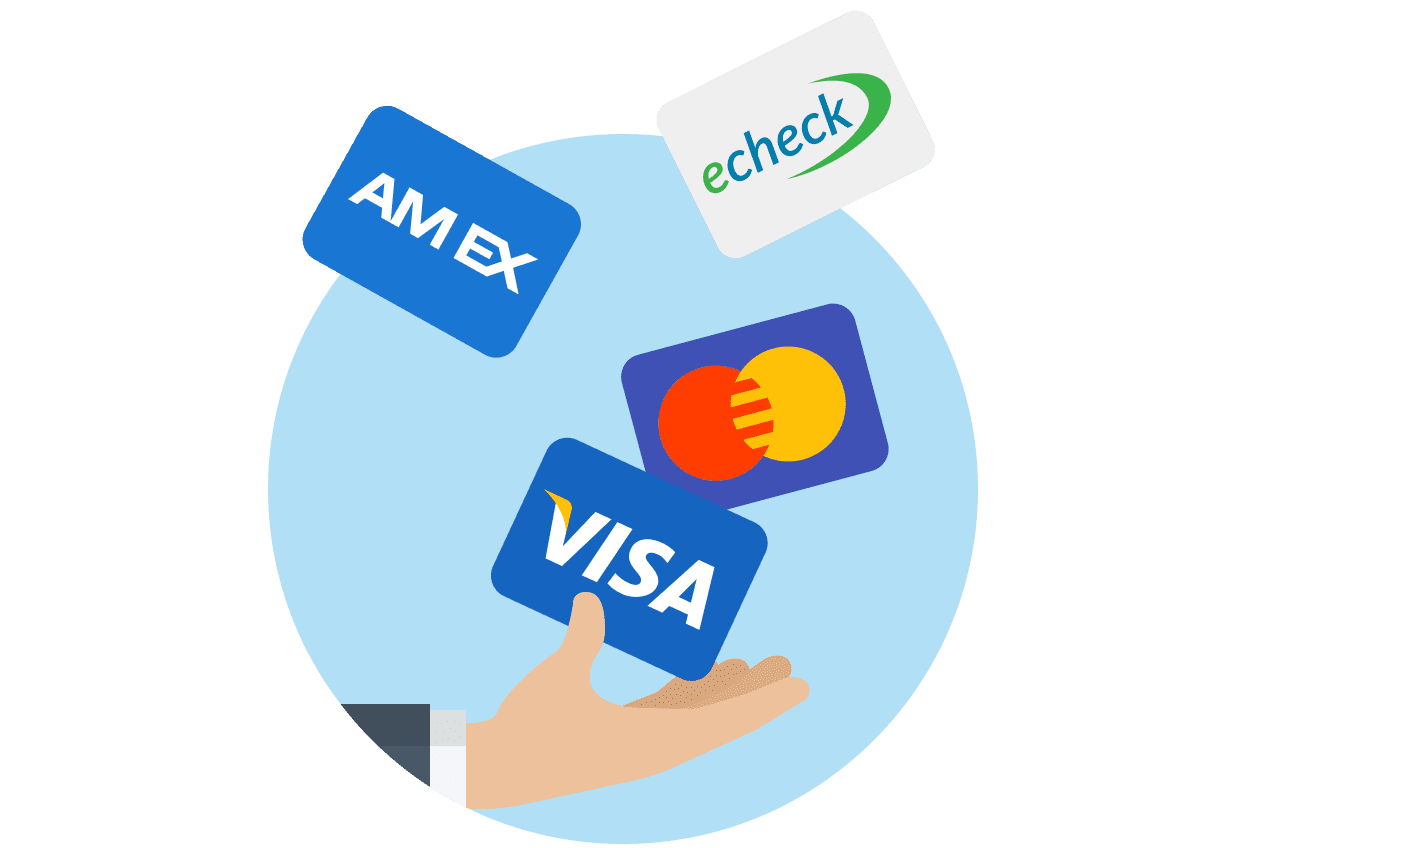 multiple payment methods - online payments in any currency